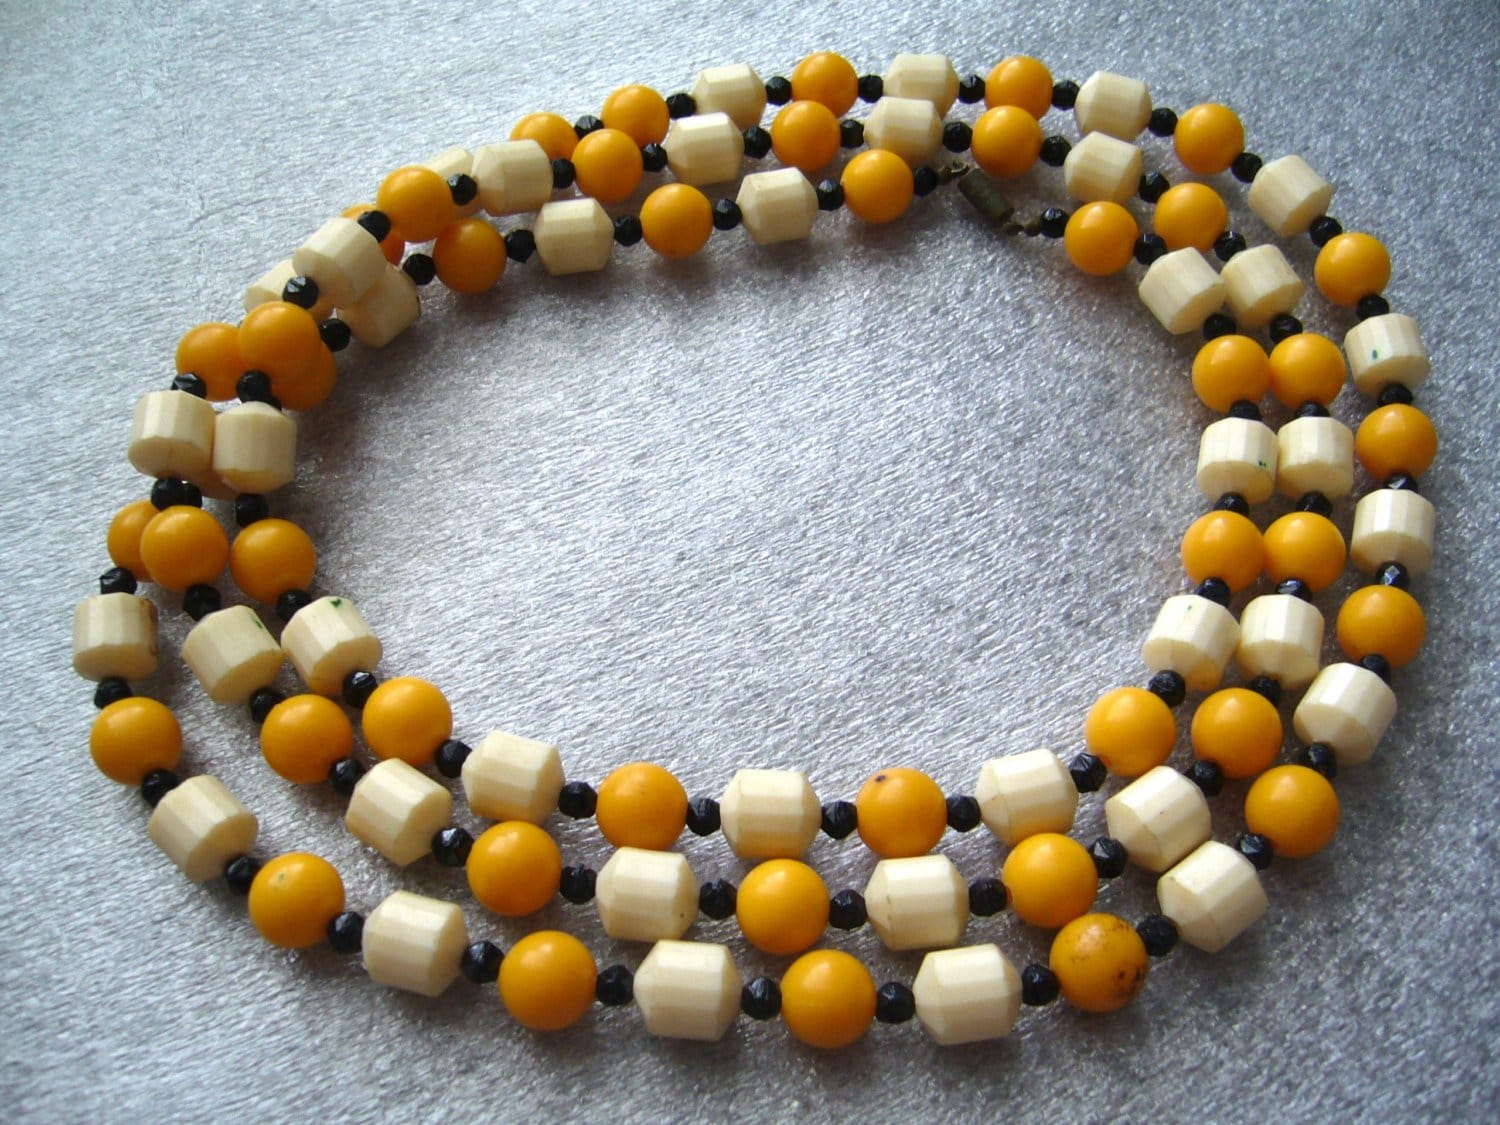 Vintage faceted yellow and off-white beads early plastic long necklace